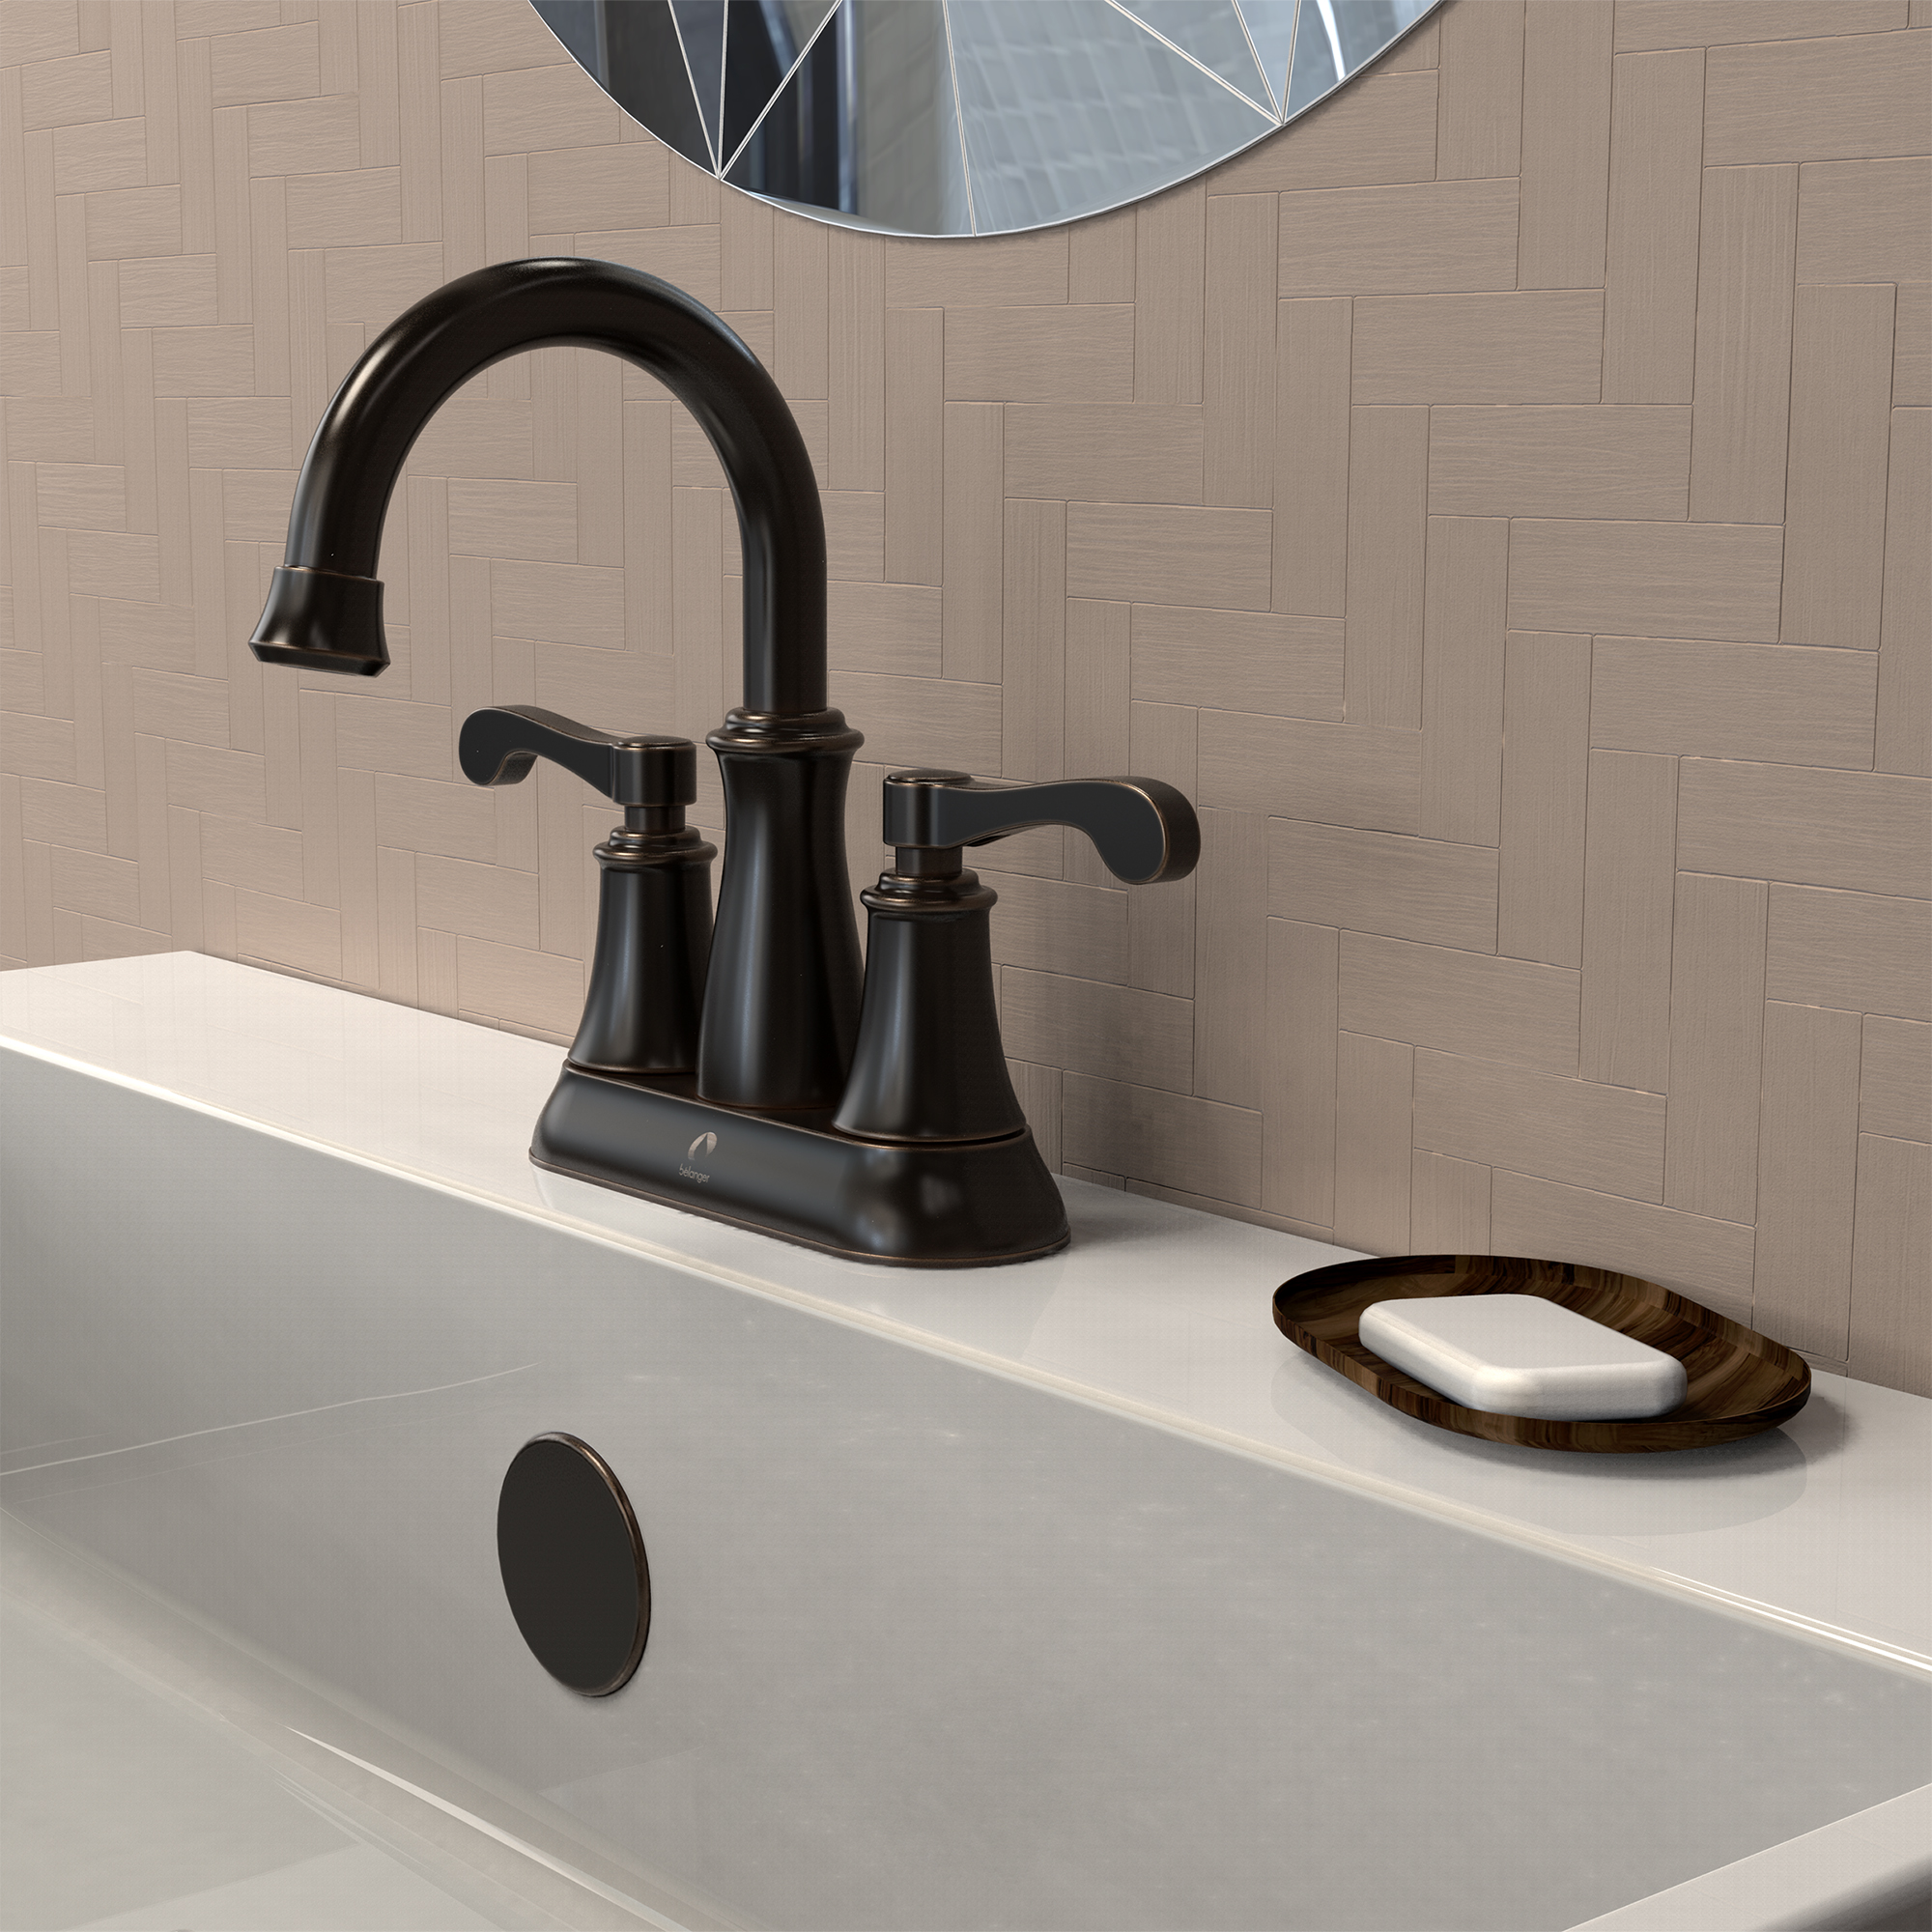 Belanger By Keeney Adds Oil Rubbed Bronze Finish To Farmhouse Style Faucets Builder Magazine